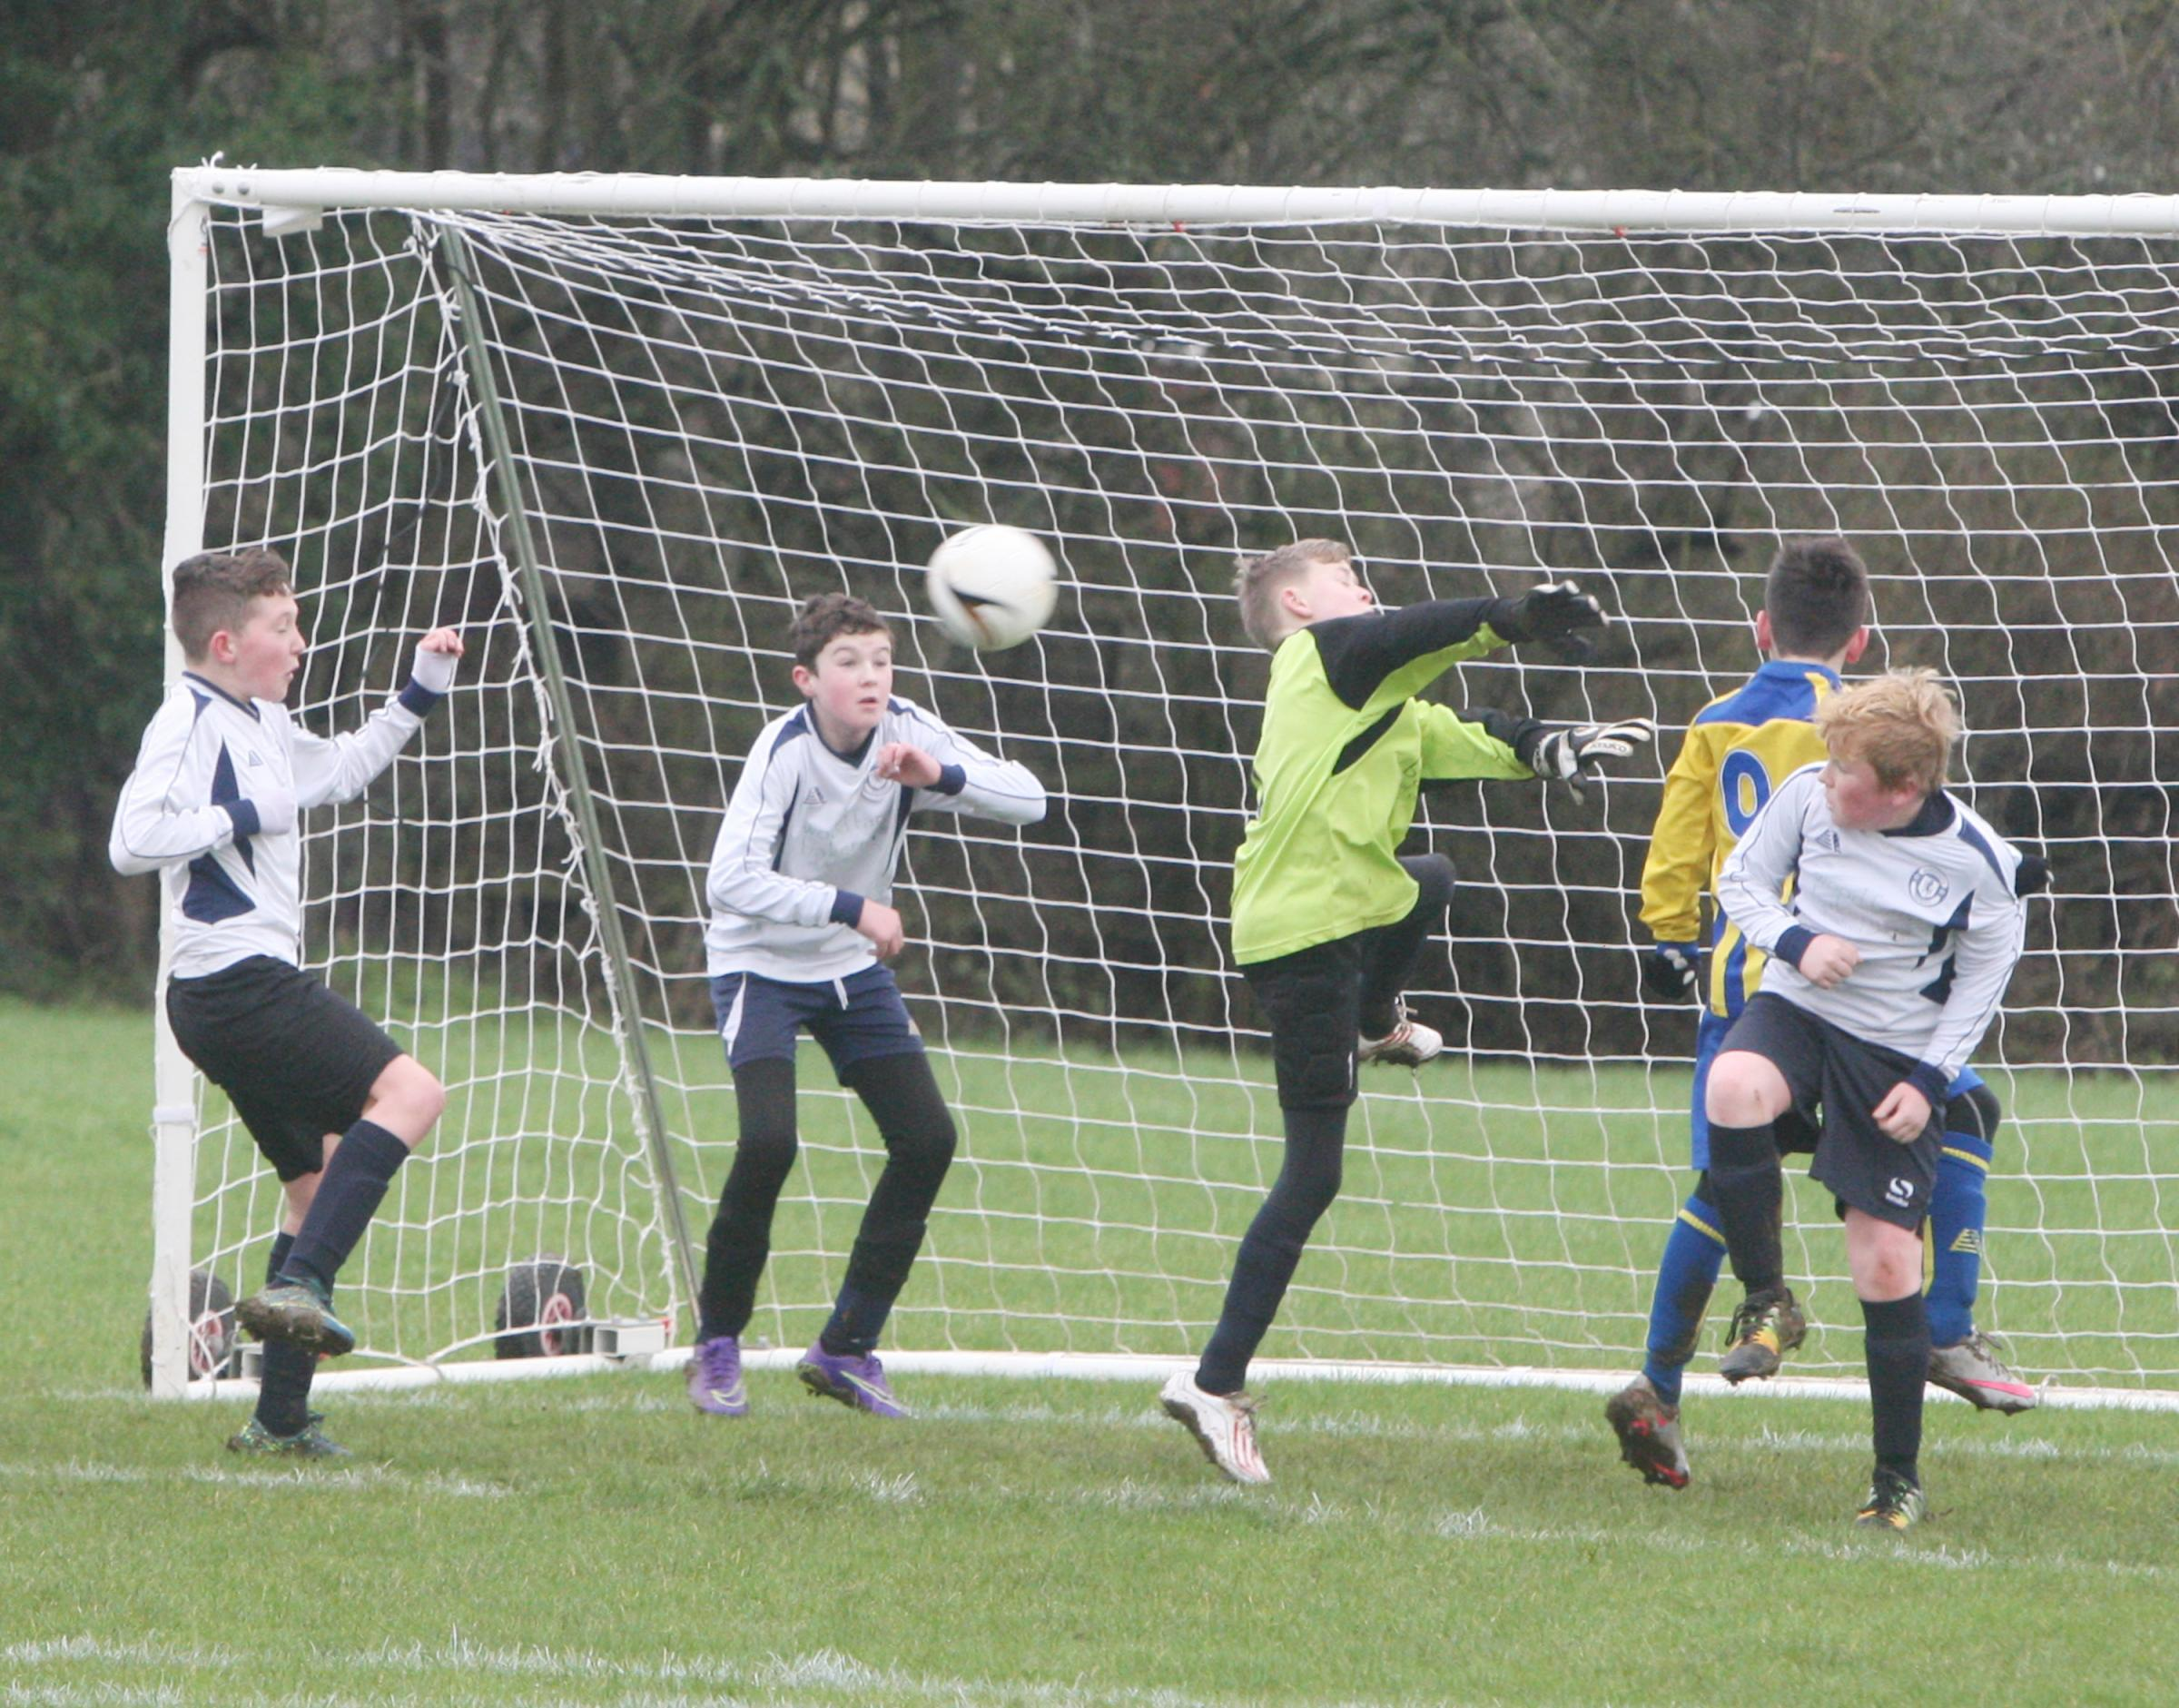 Horspath Lions keeper Evan Harris punches clear in the 0-0 draw with Didcot Casuals in the Oxford Mail Youth Under 12 A League Picture: Steve Wheeler